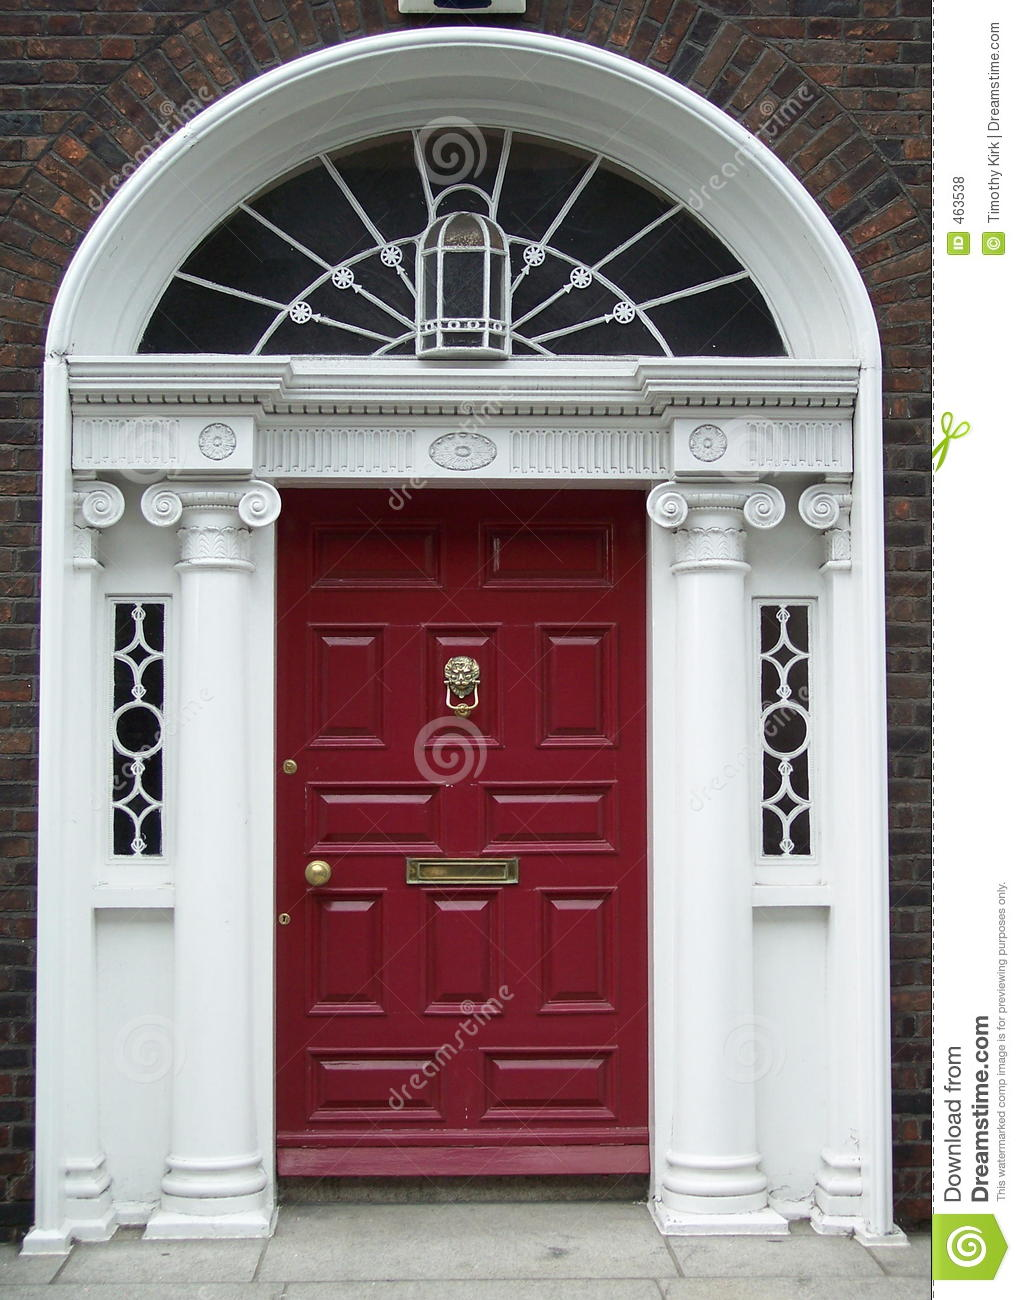 Maroon Dublin Door & Maroon Dublin Door Royalty Free Stock Photos - Image: 463538 Pezcame.Com